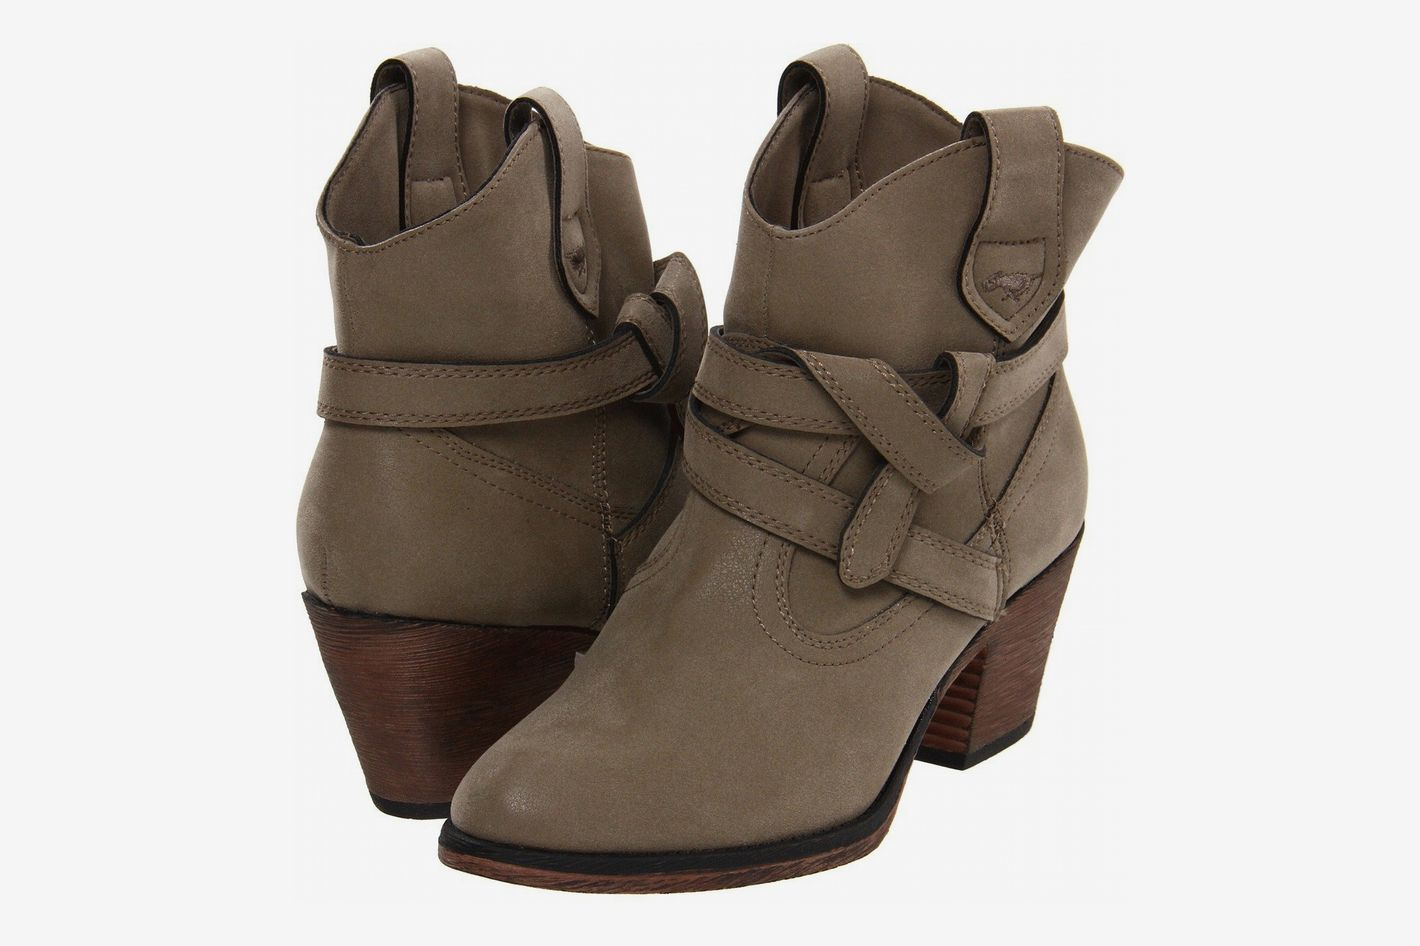 e1912ecd7bf 15 Best Women's Ankle Boots 2019